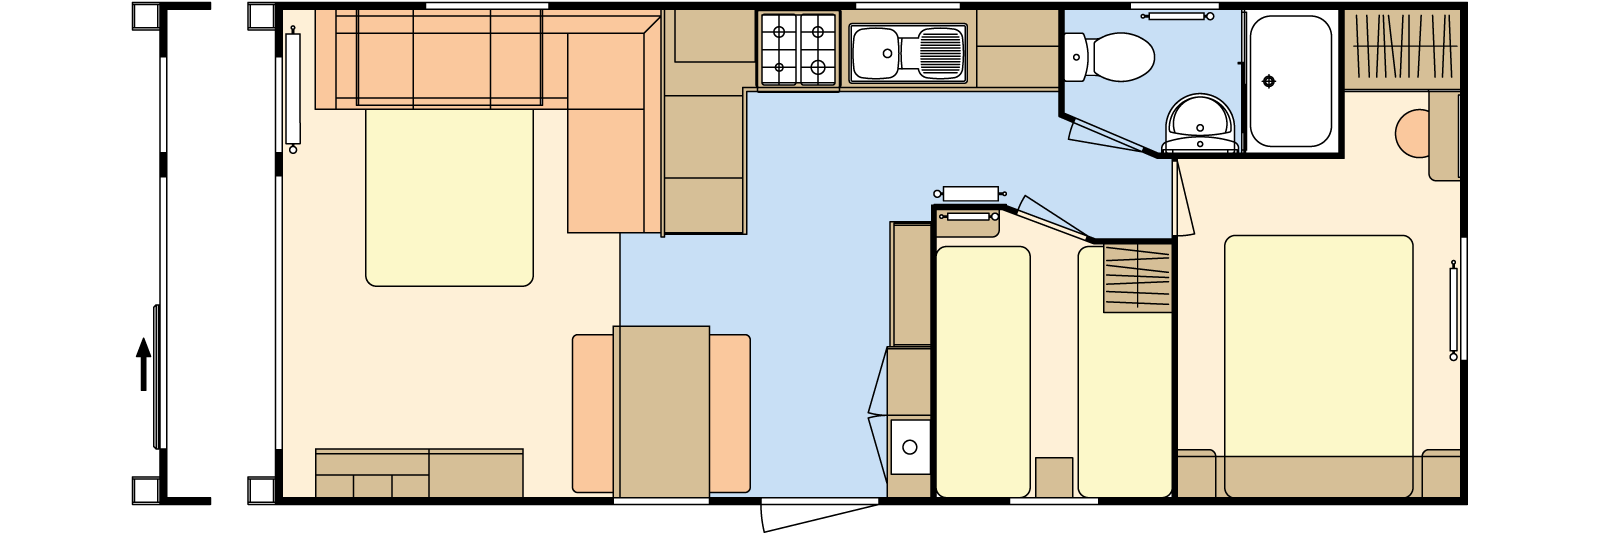 28 × 12 – 2 bedroom/6 berth